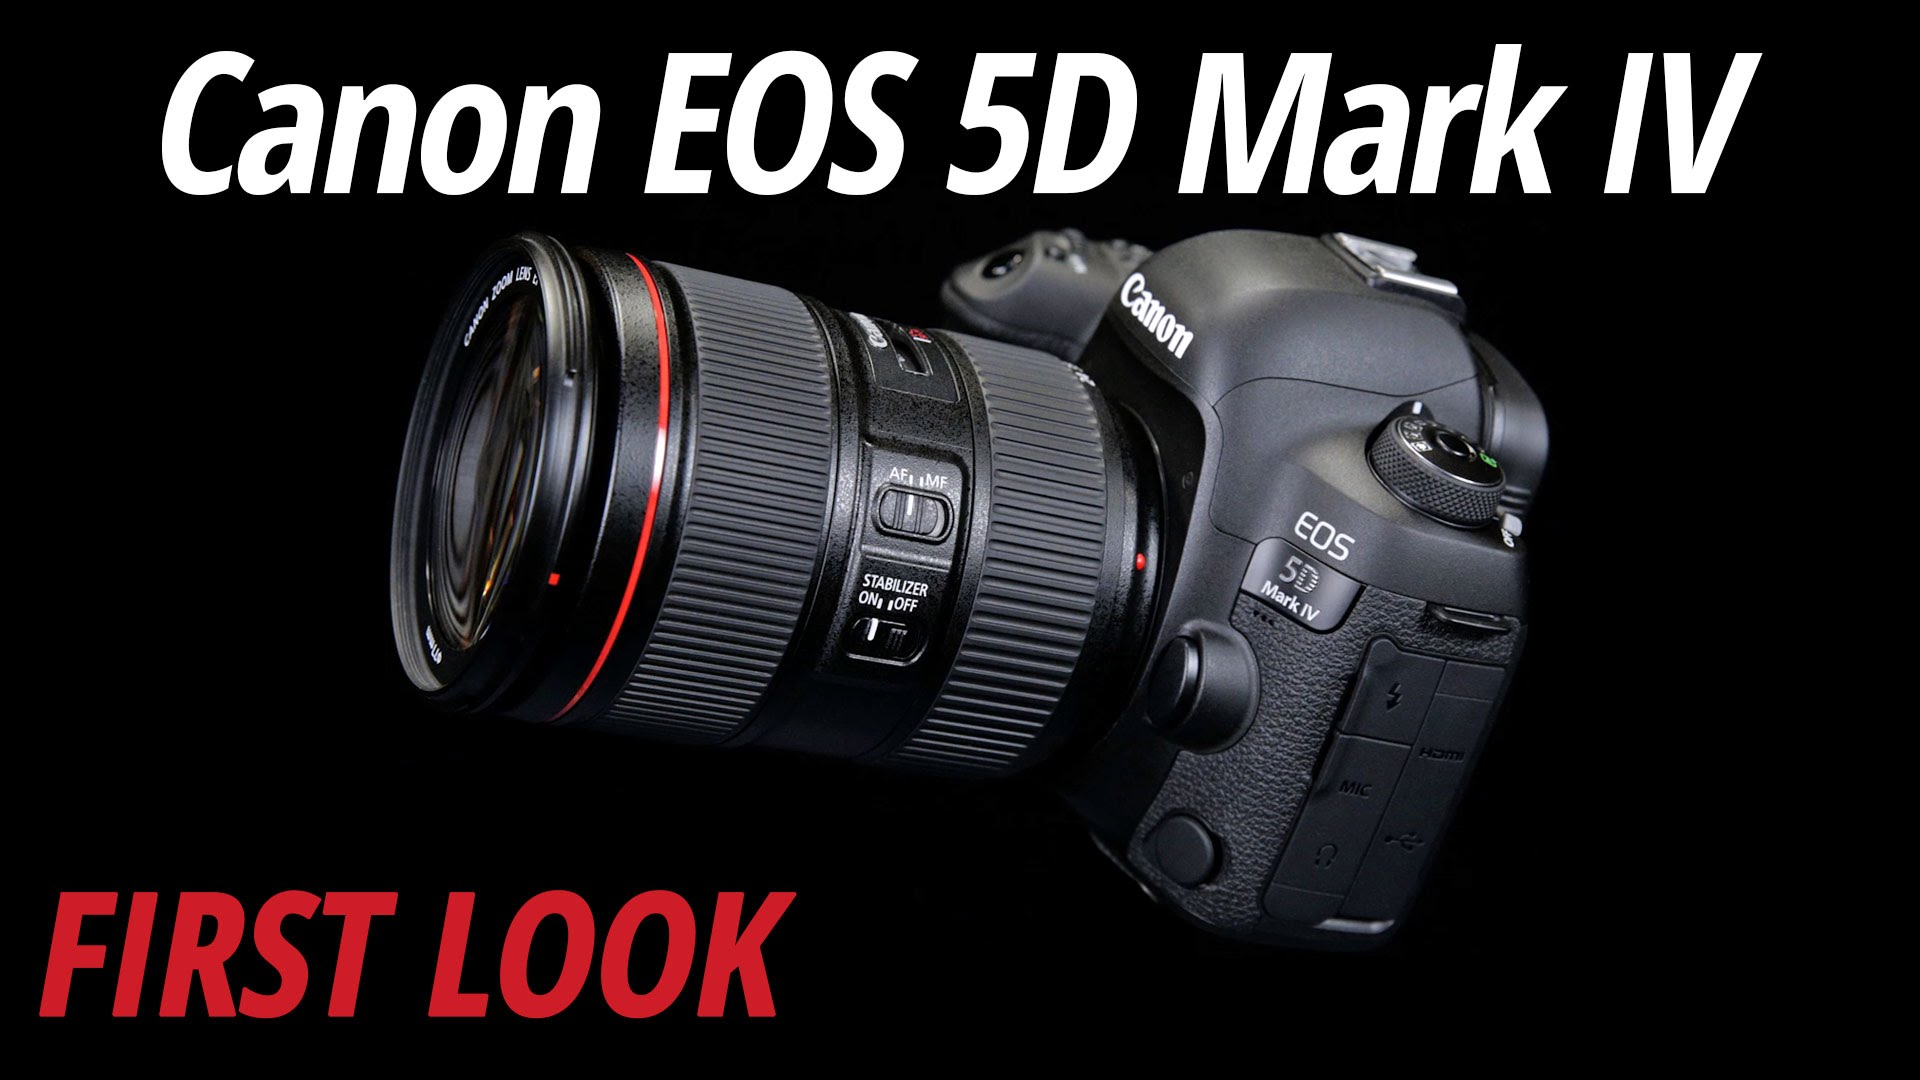 First Look at the Canon EOS 5D Mark IV and Two L Series Lenses